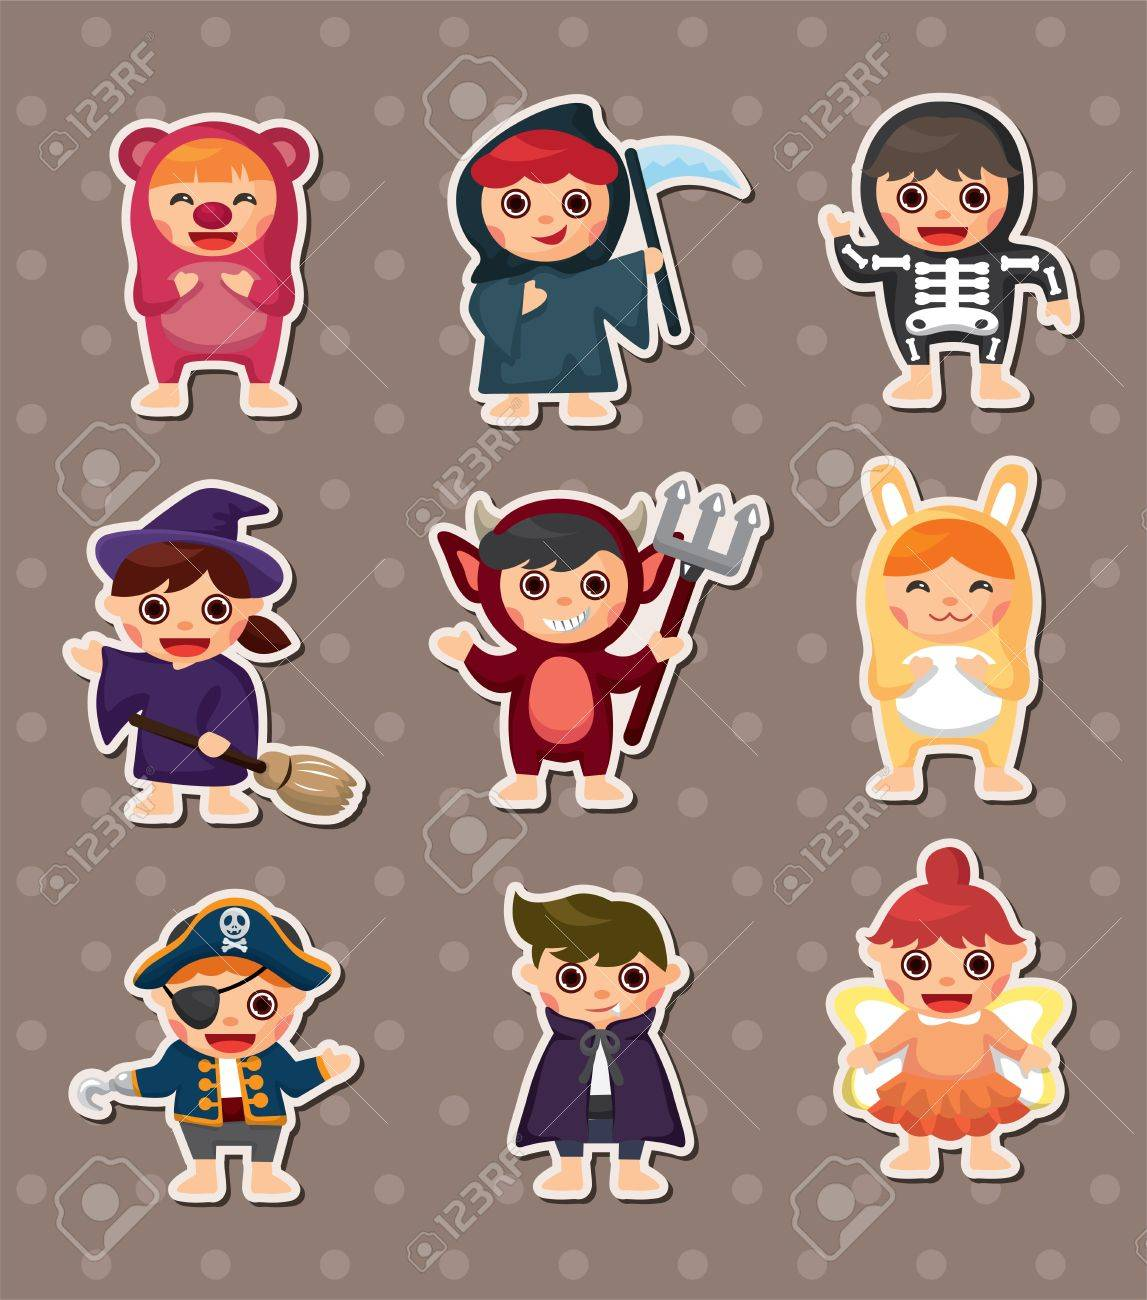 Halloween Costume Party Royalty Free Cliparts, Vectors, And Stock ...